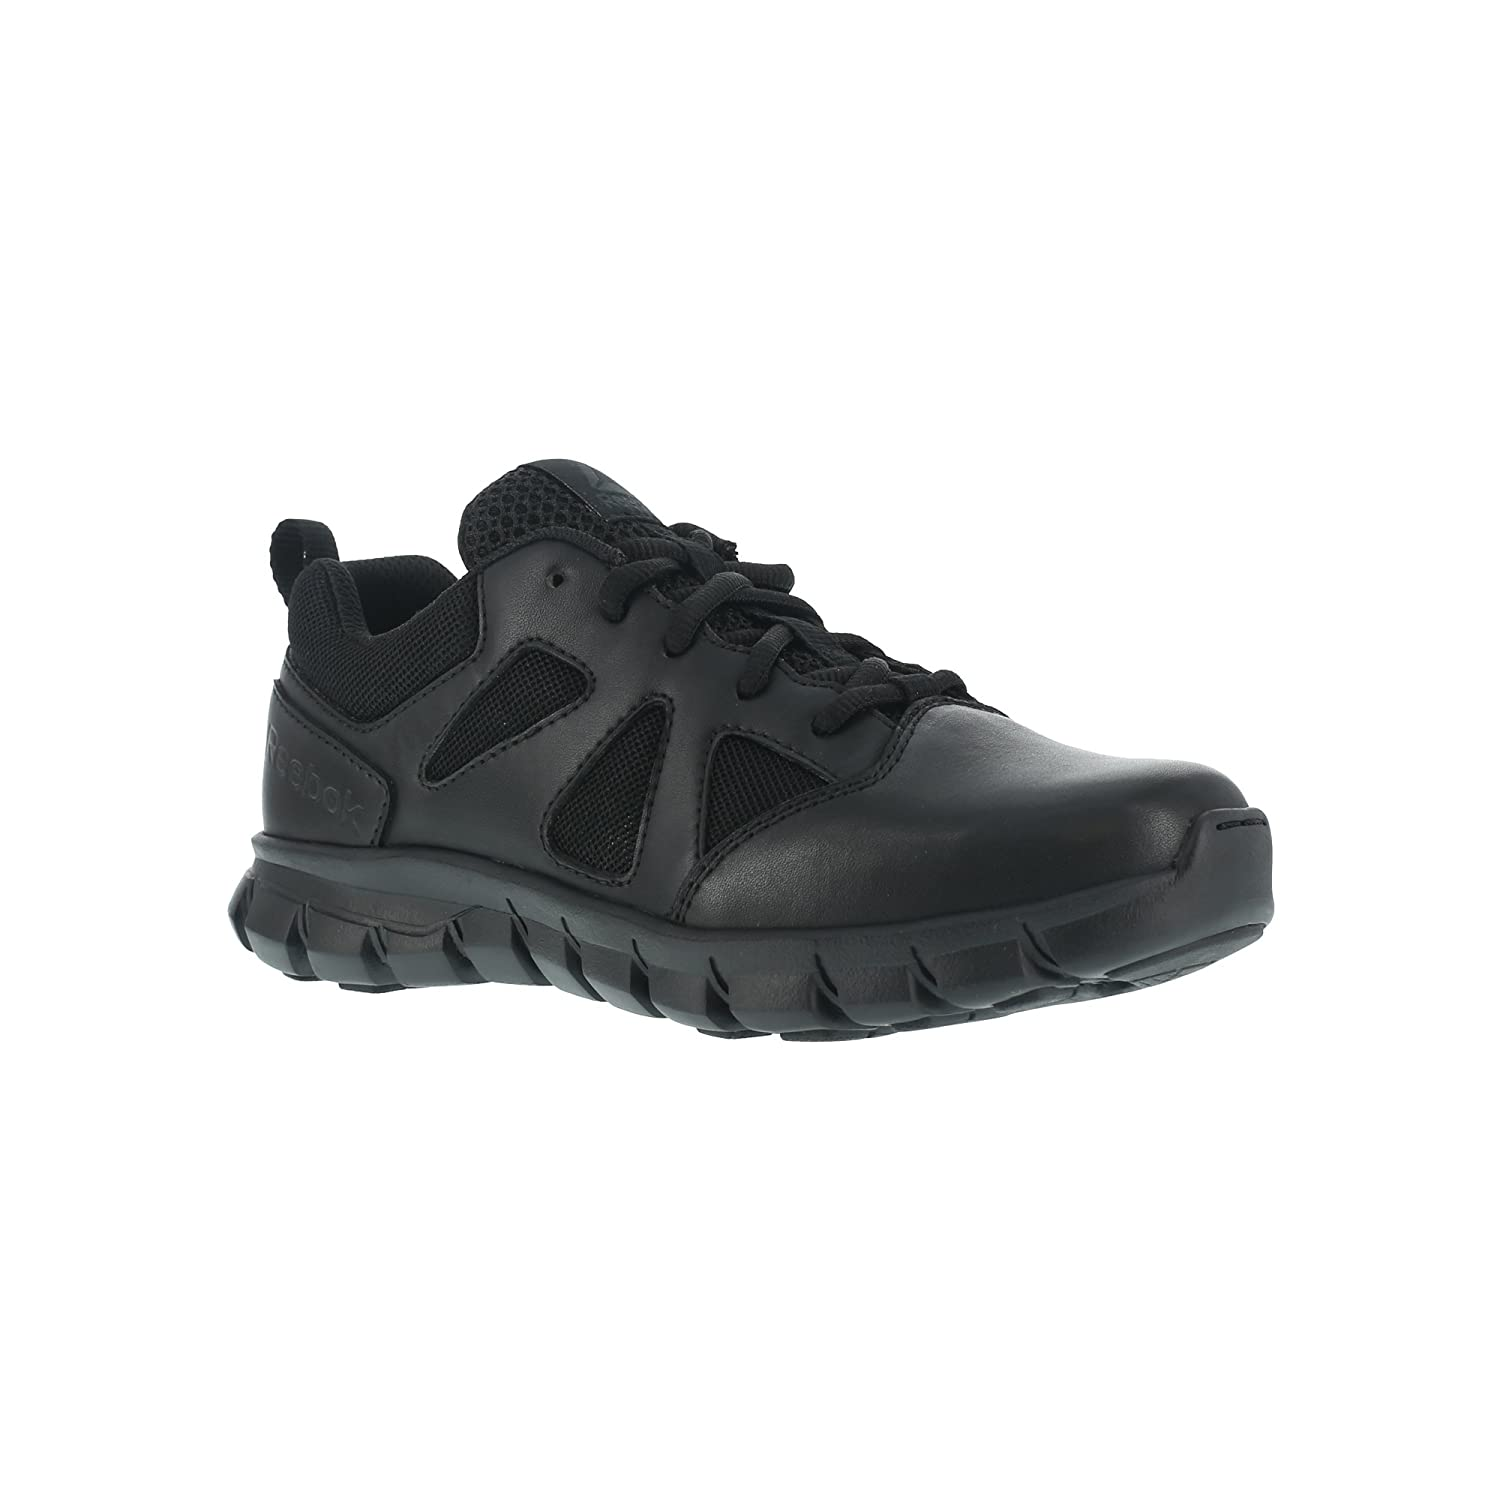 Reebok Women's Sublite Cushion RB815 Military and Tactical Boot B06ZZDYHVC 7.5 B(M) US Black